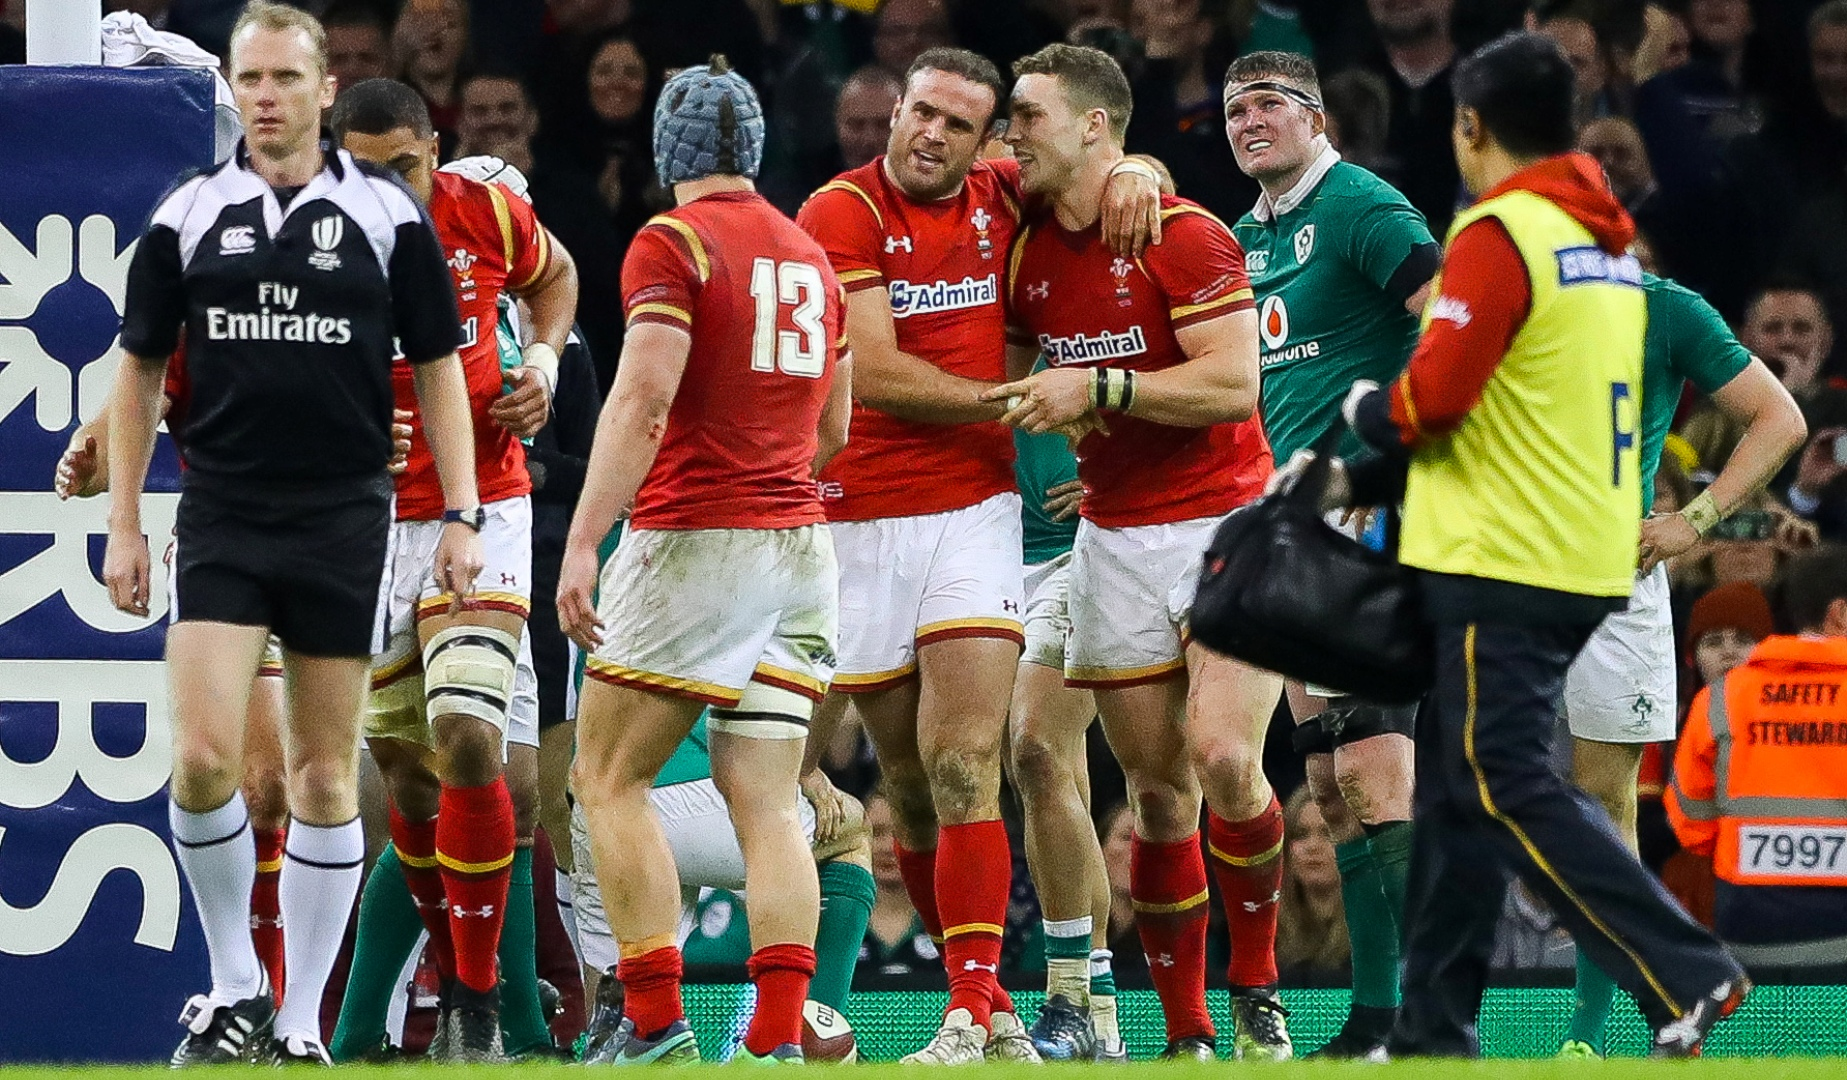 Webb insists Wales repaid coaches' faith with Ireland win